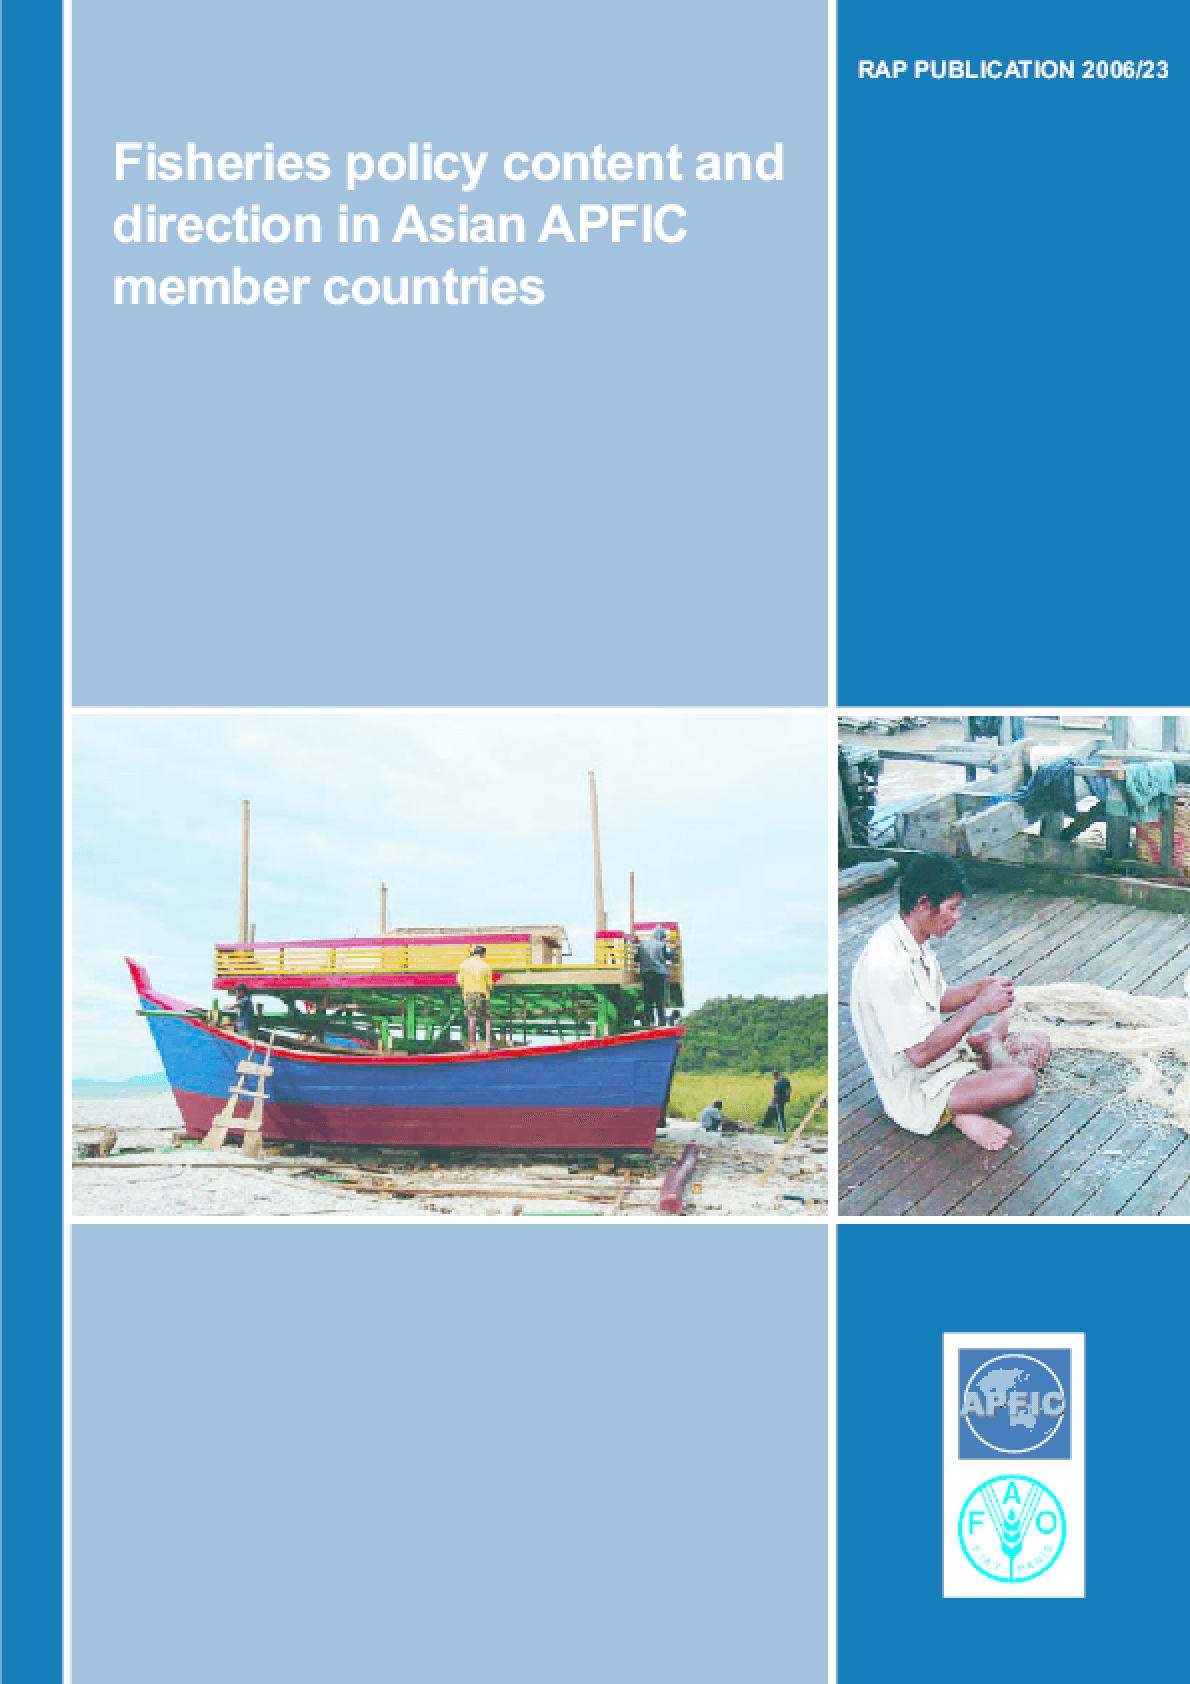 Fisheries Policy Content and Direction in Asian APFIC Member Countries